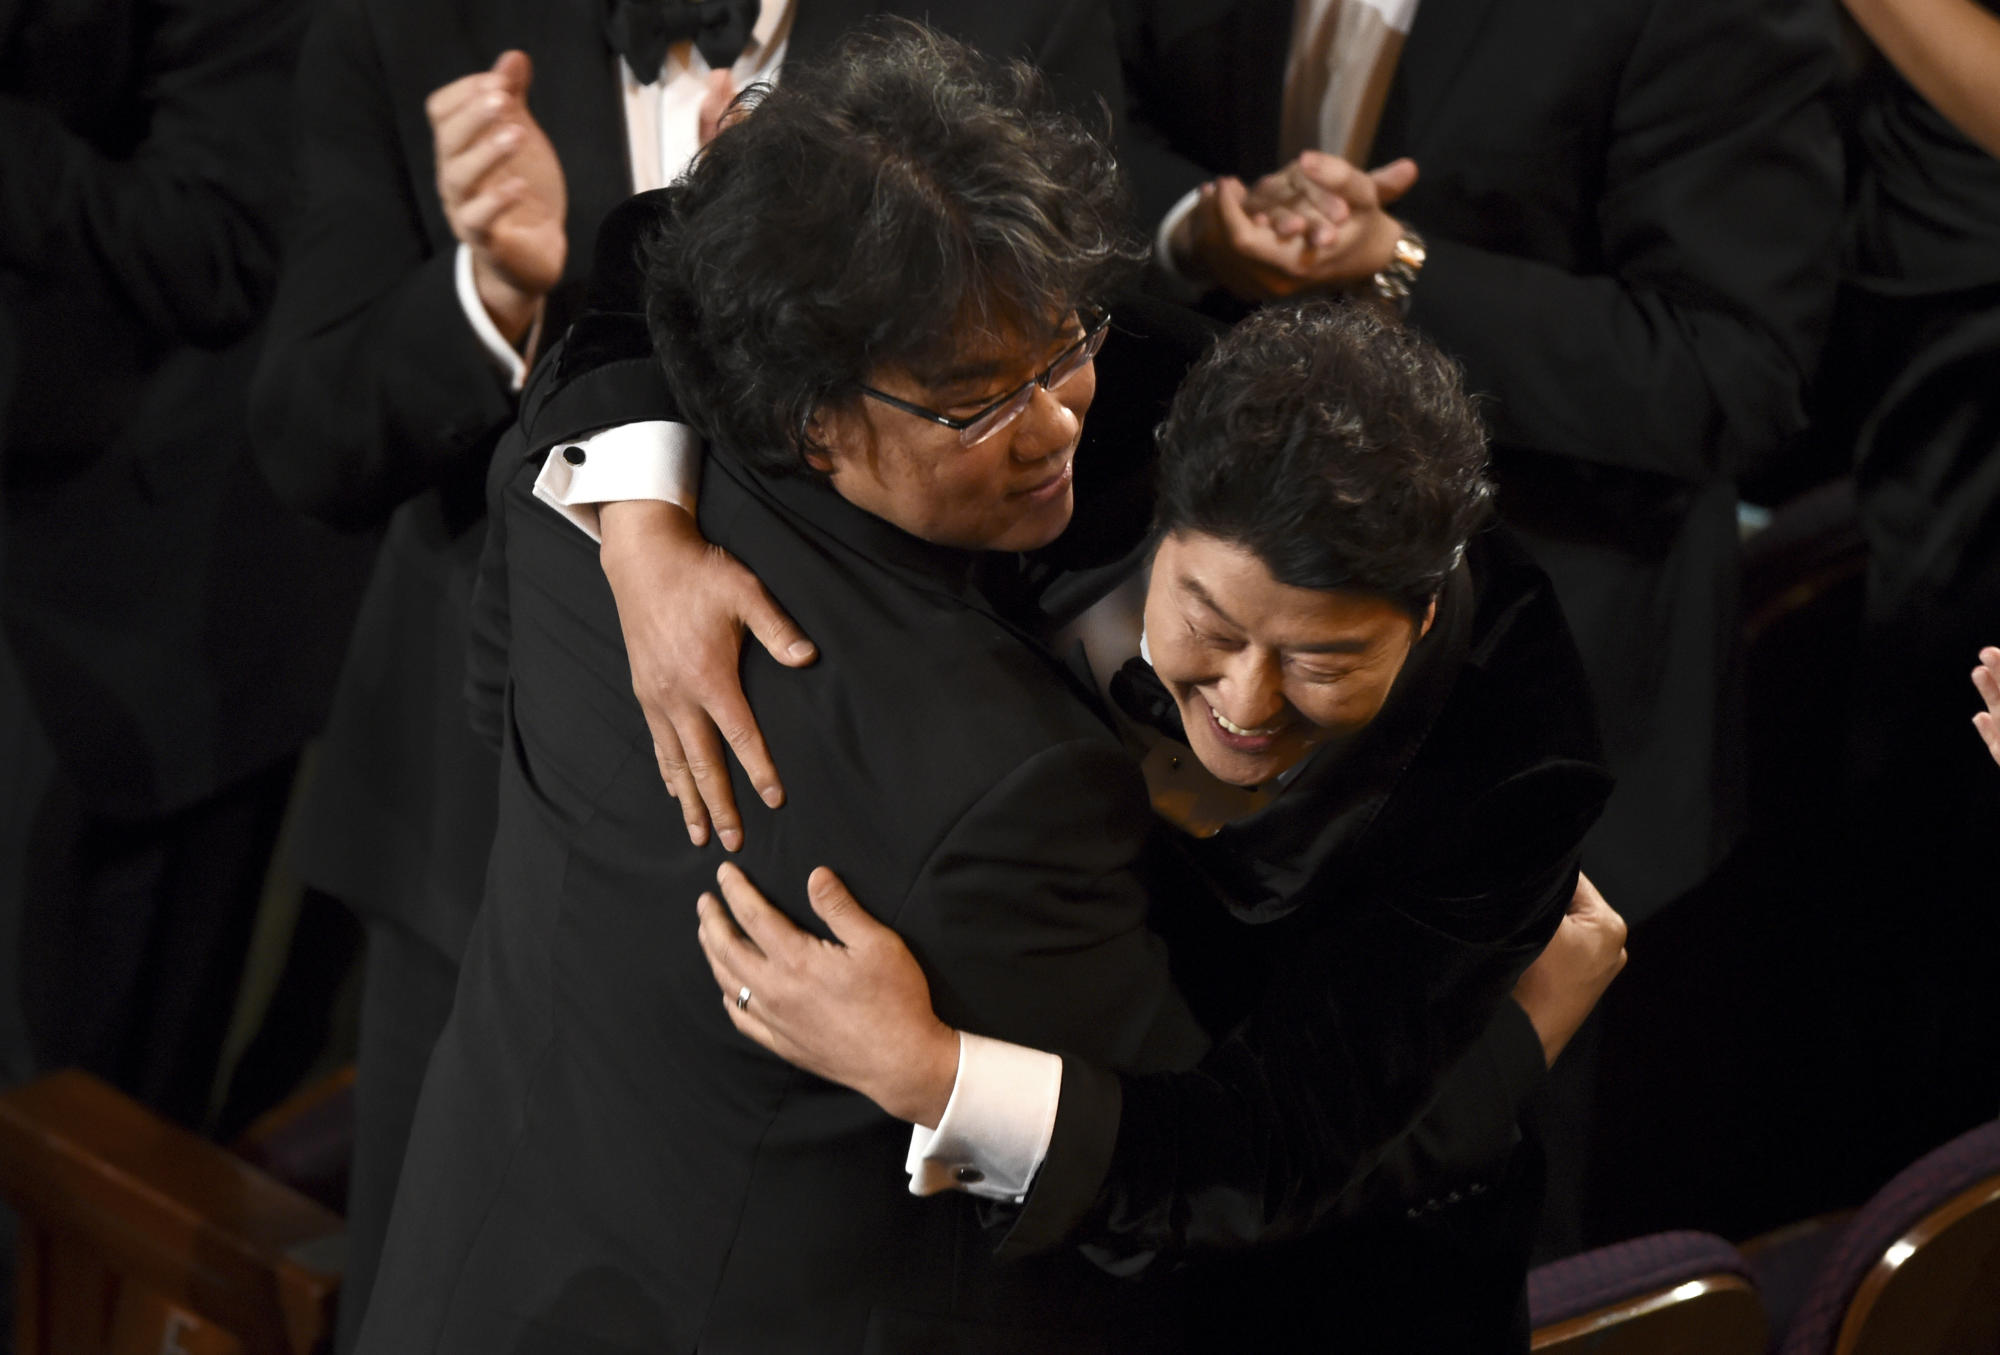 Oscars 2020: 'Parasite' wins Best Picture and Director in historic foreign language movie sweep